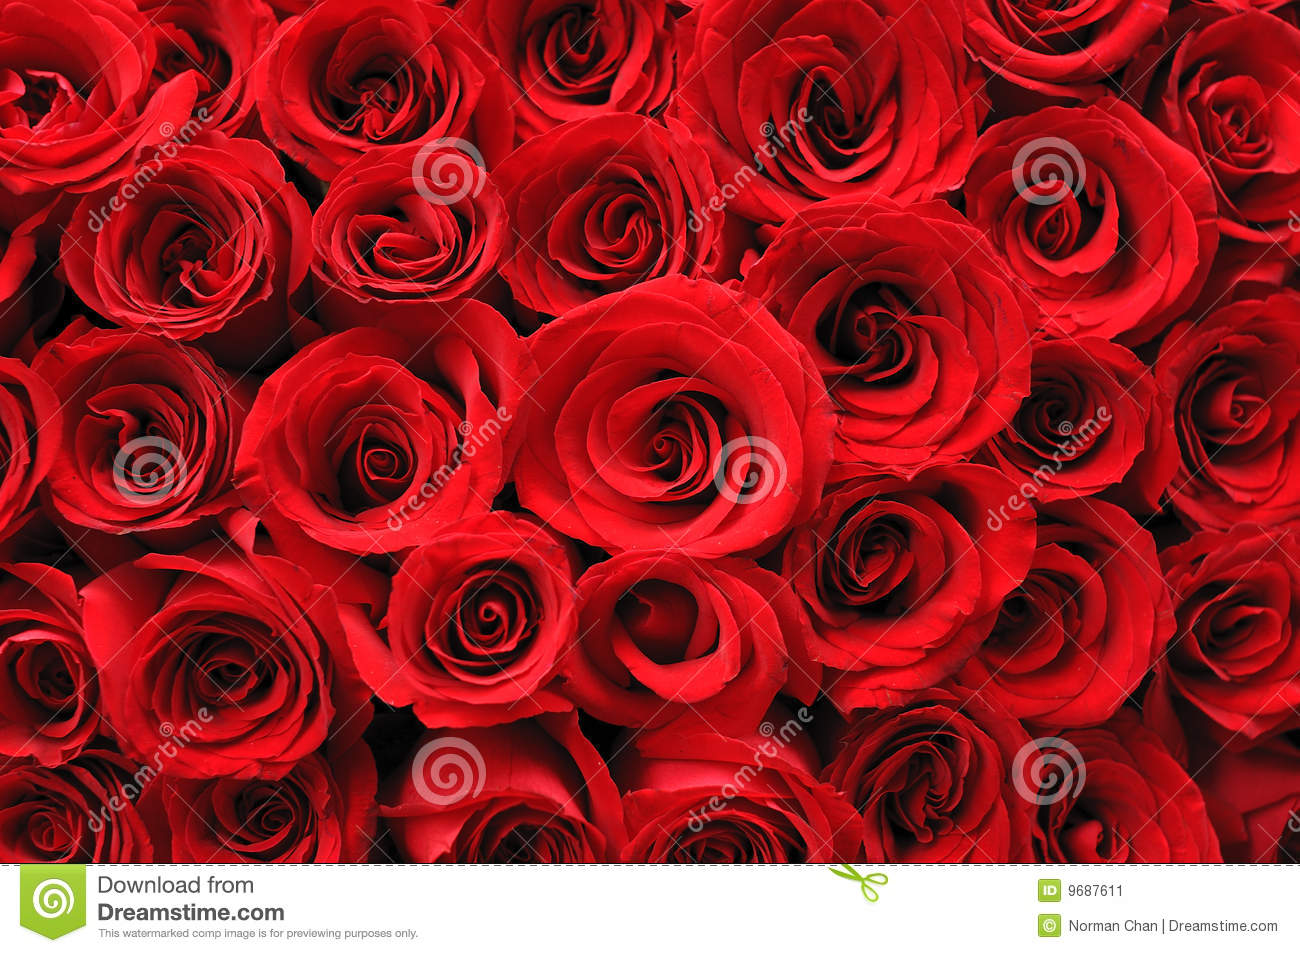 Chanel Wallpaper For Iphone 5 Red Roses Background Stock Image Image Of Blossom